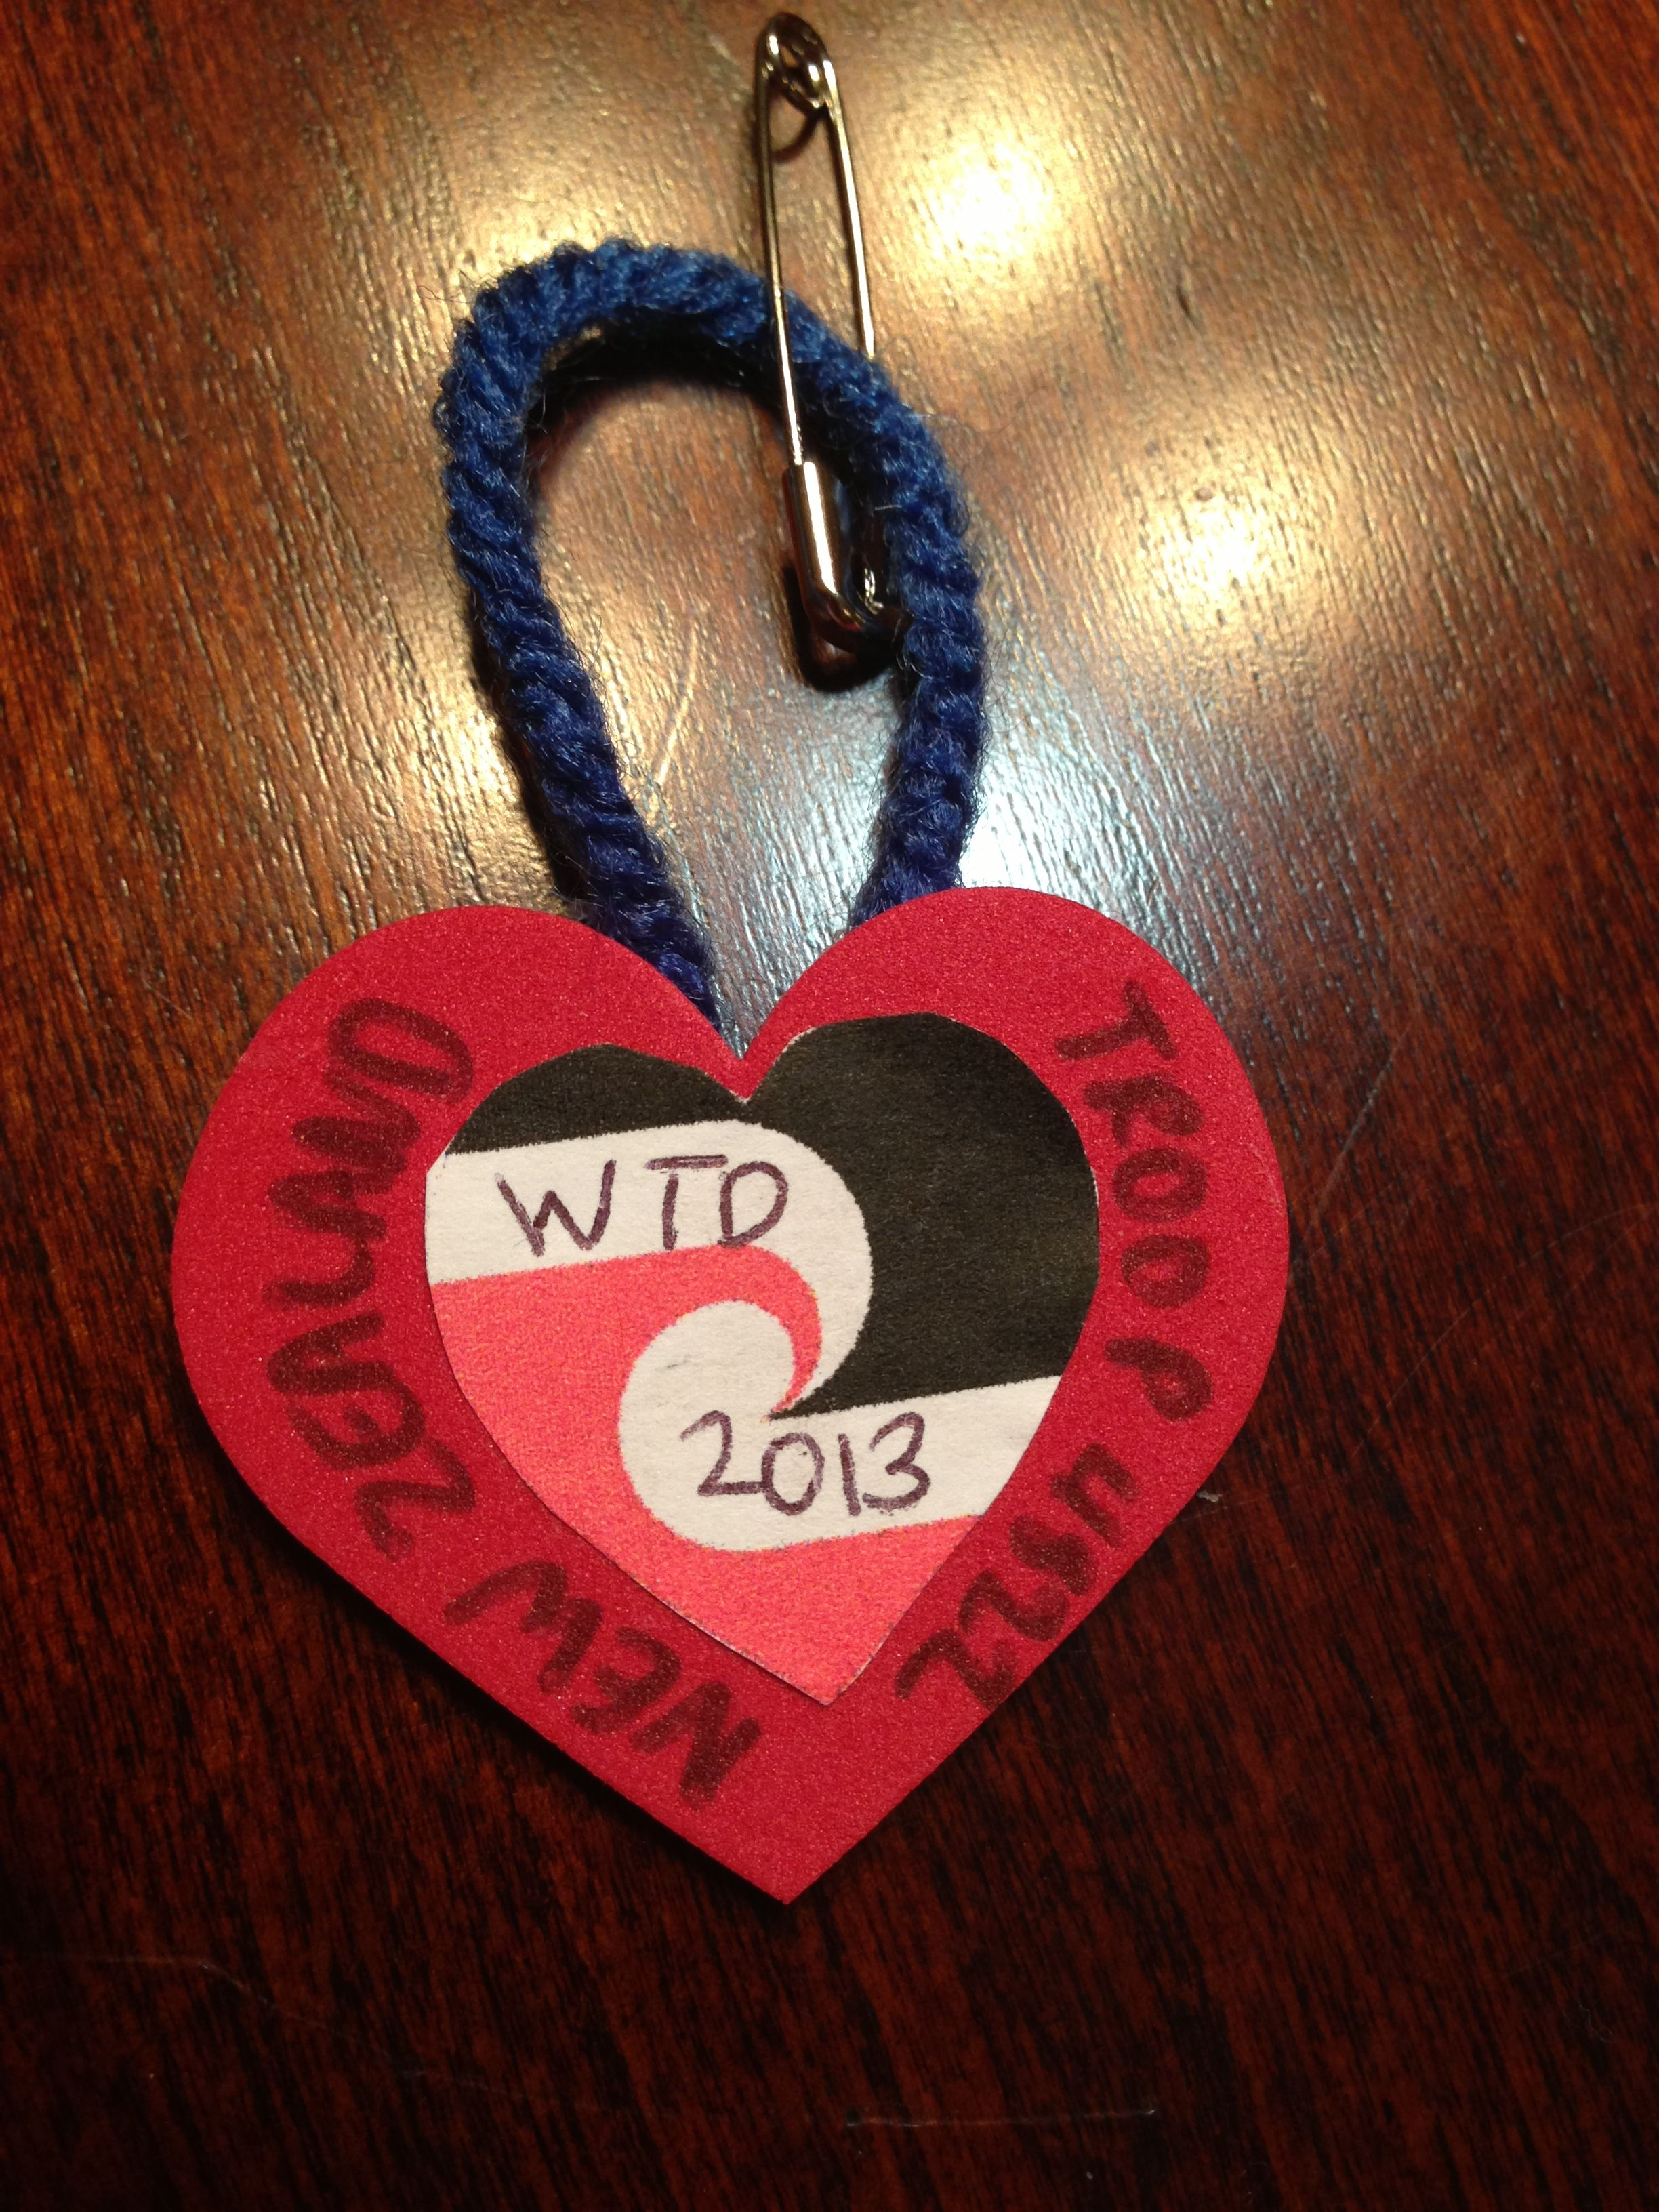 Pin On Camporee Thinking Day Swaps